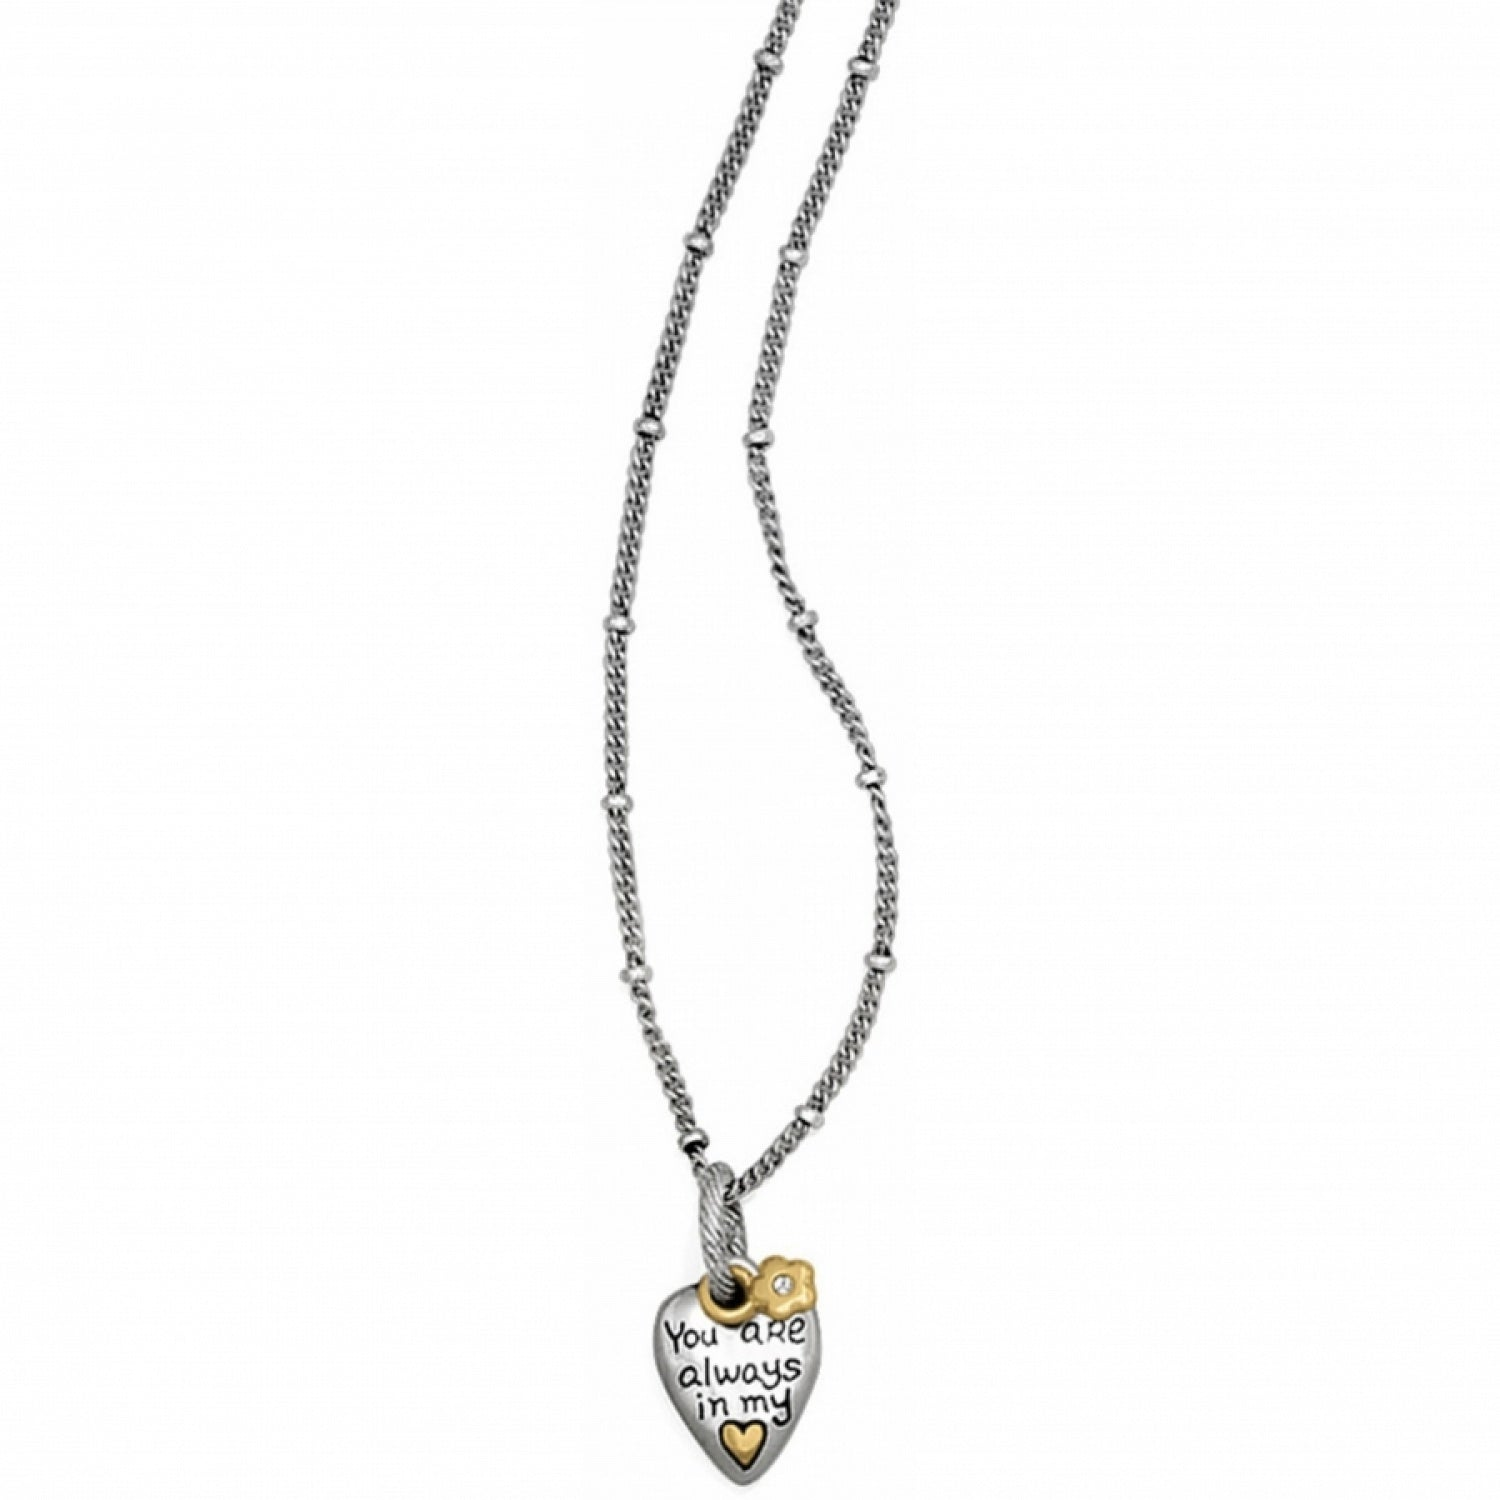 In My Heart Petite Necklace